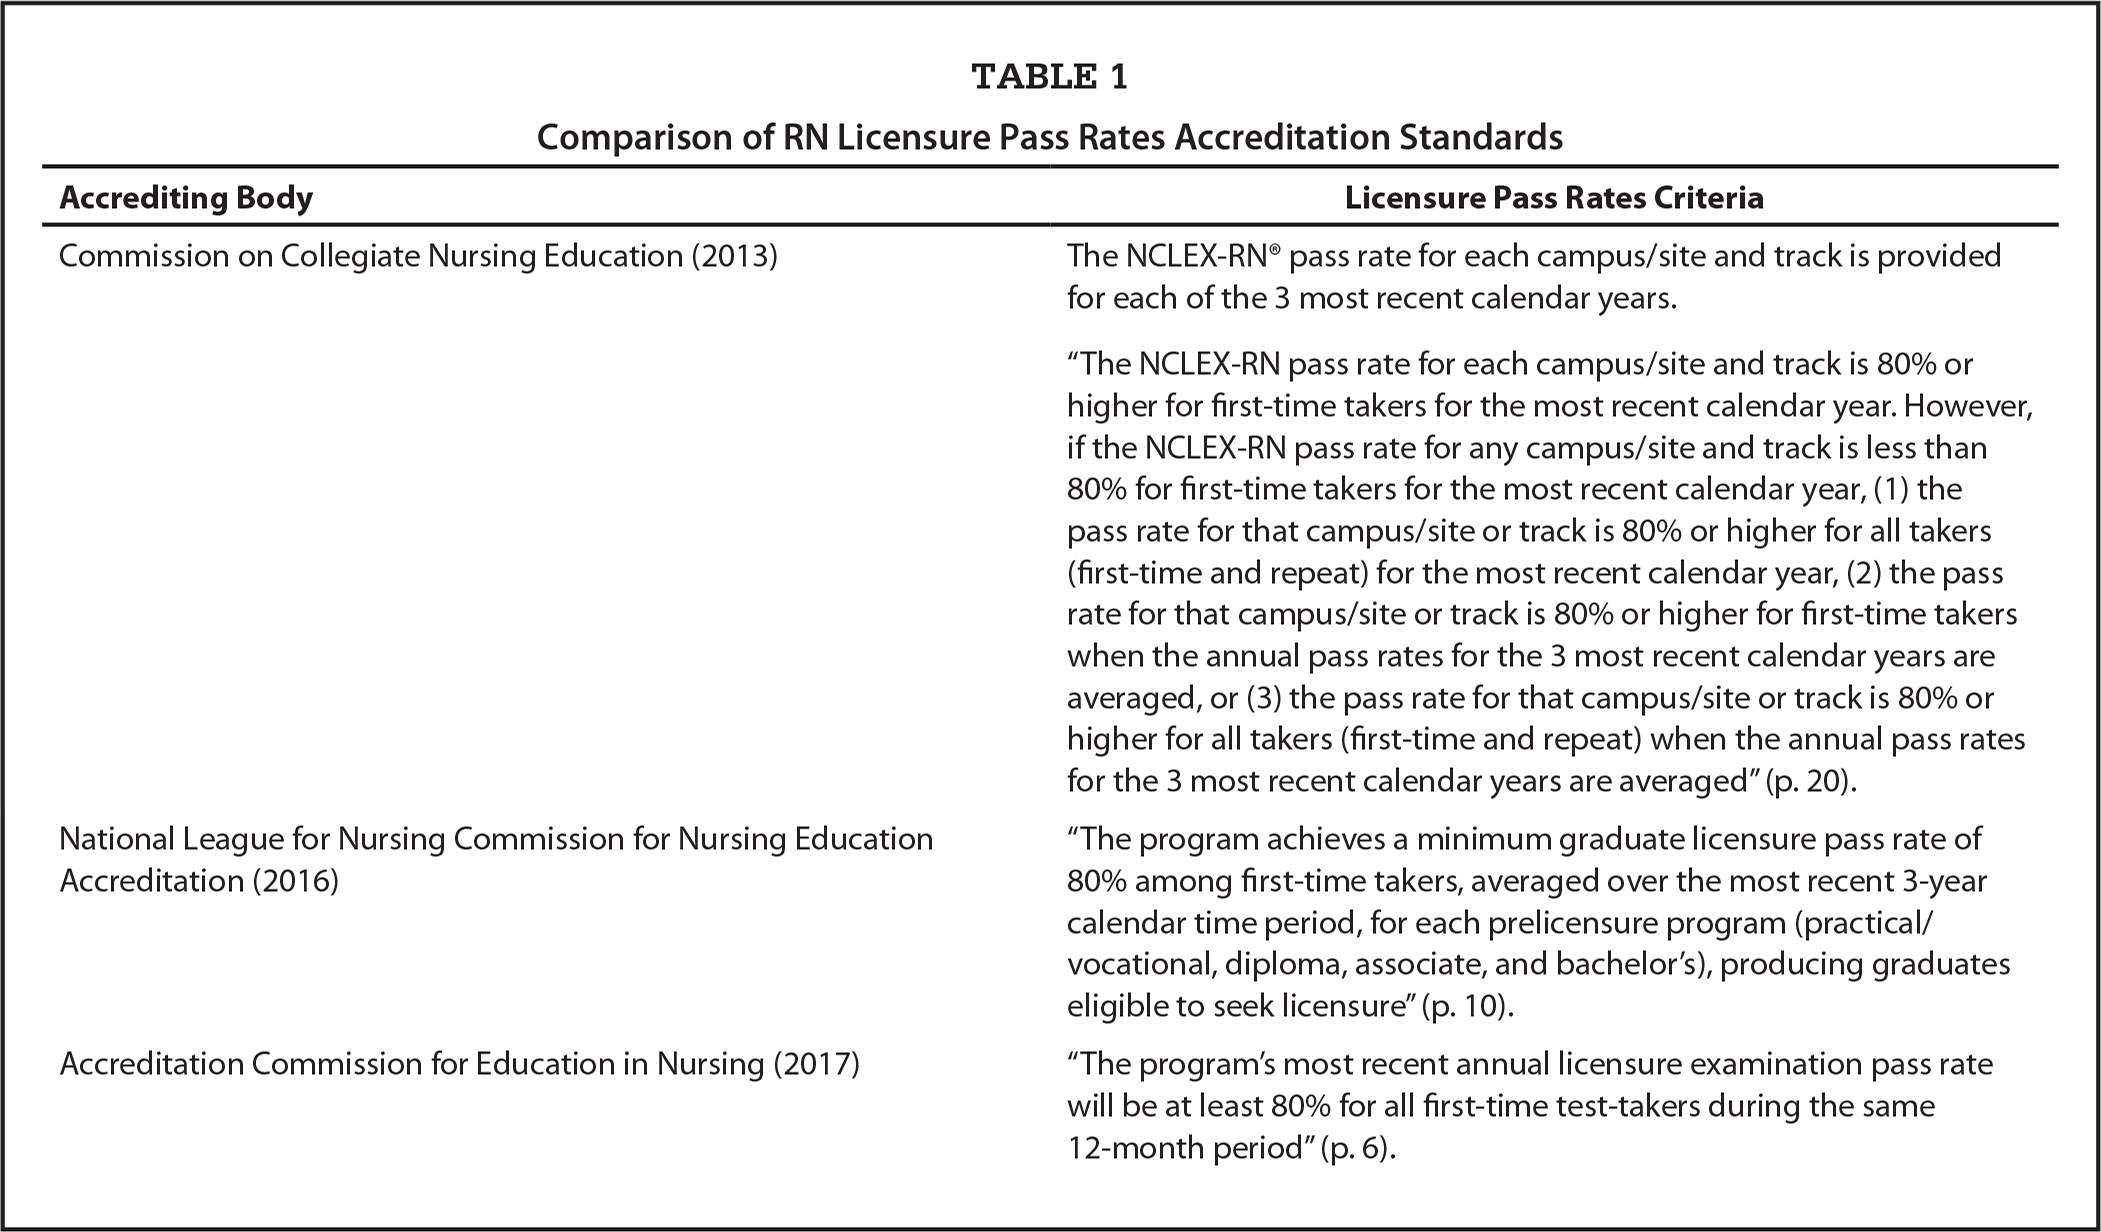 Comparison of RN Licensure Pass Rates Accreditation Standards